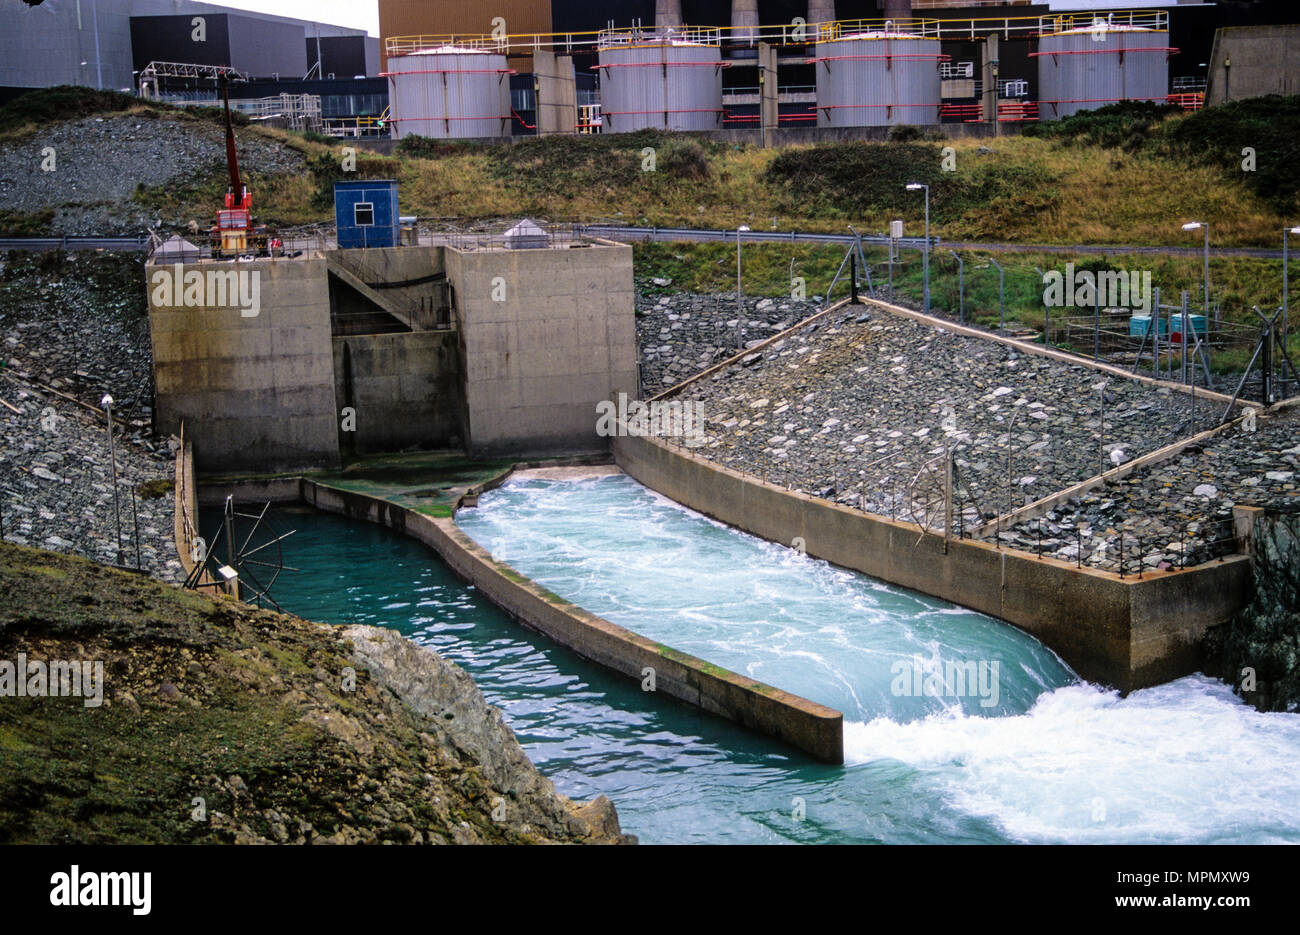 Cooling Water Outlet, Welfa Nuclear Power Station, Cemaes Bay, Anglesey, Wales, UK, GB. - Stock Image